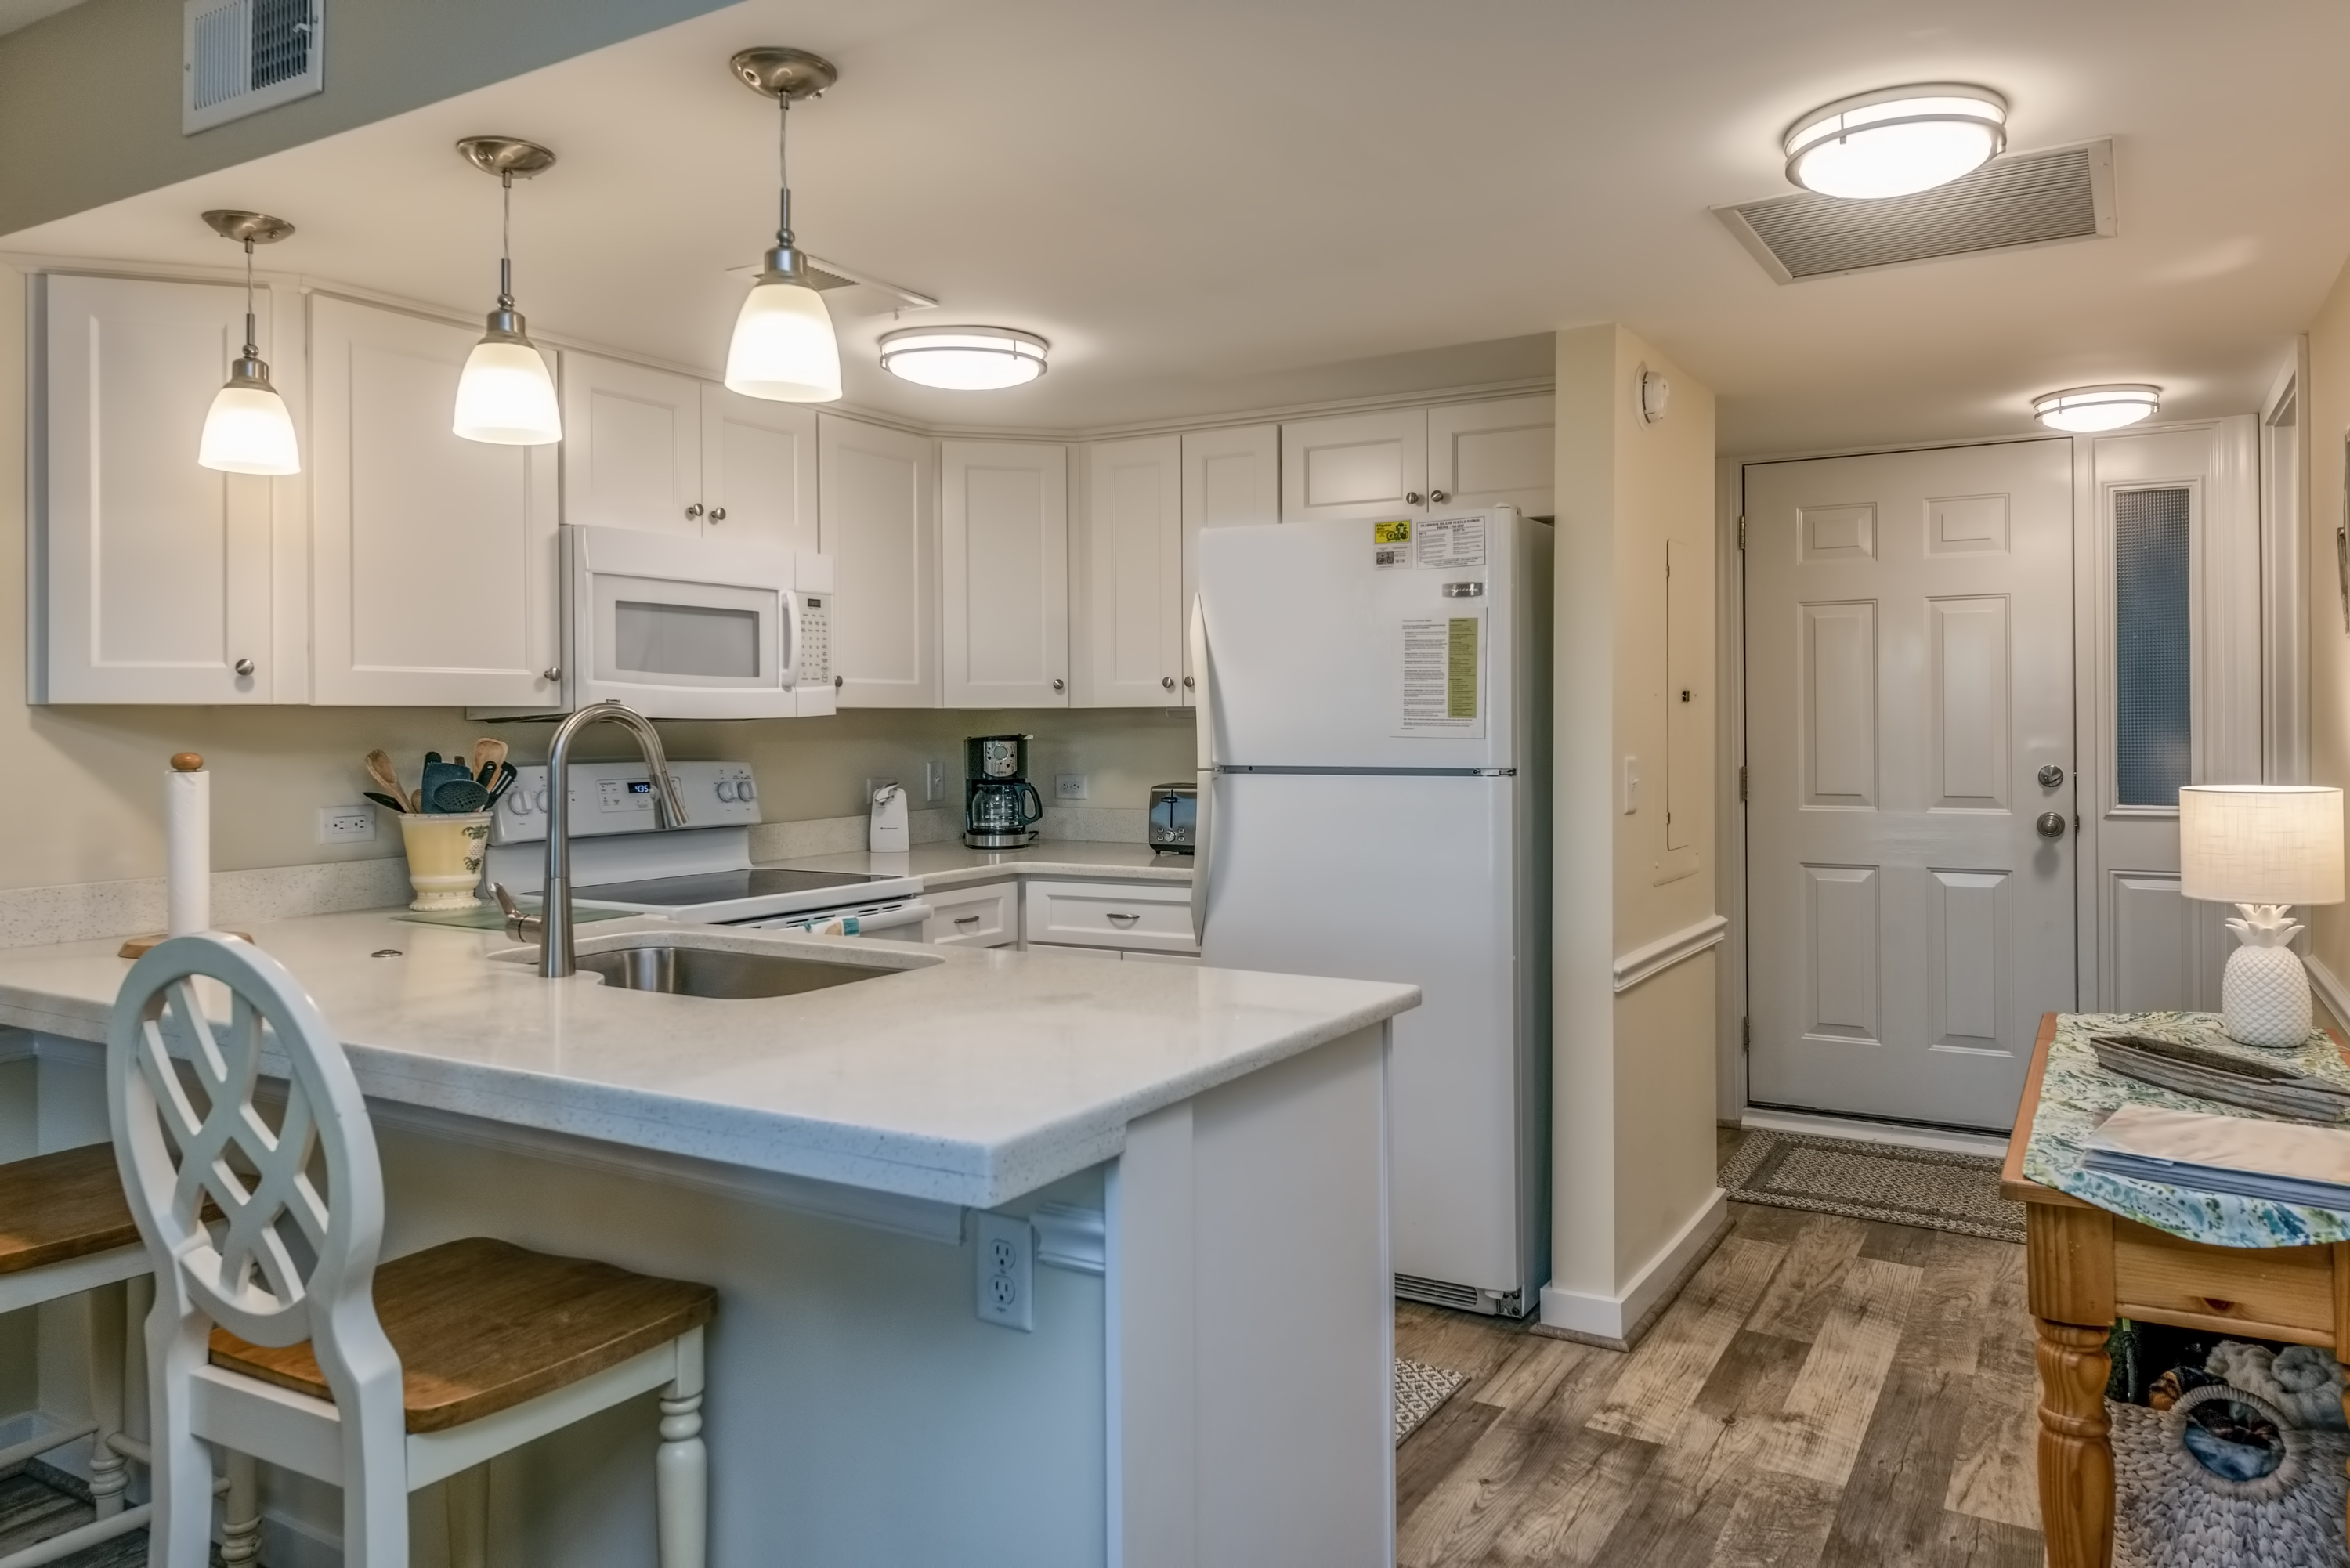 newly renovated kitchen with granite countertops, new cabinets and light fixtures.